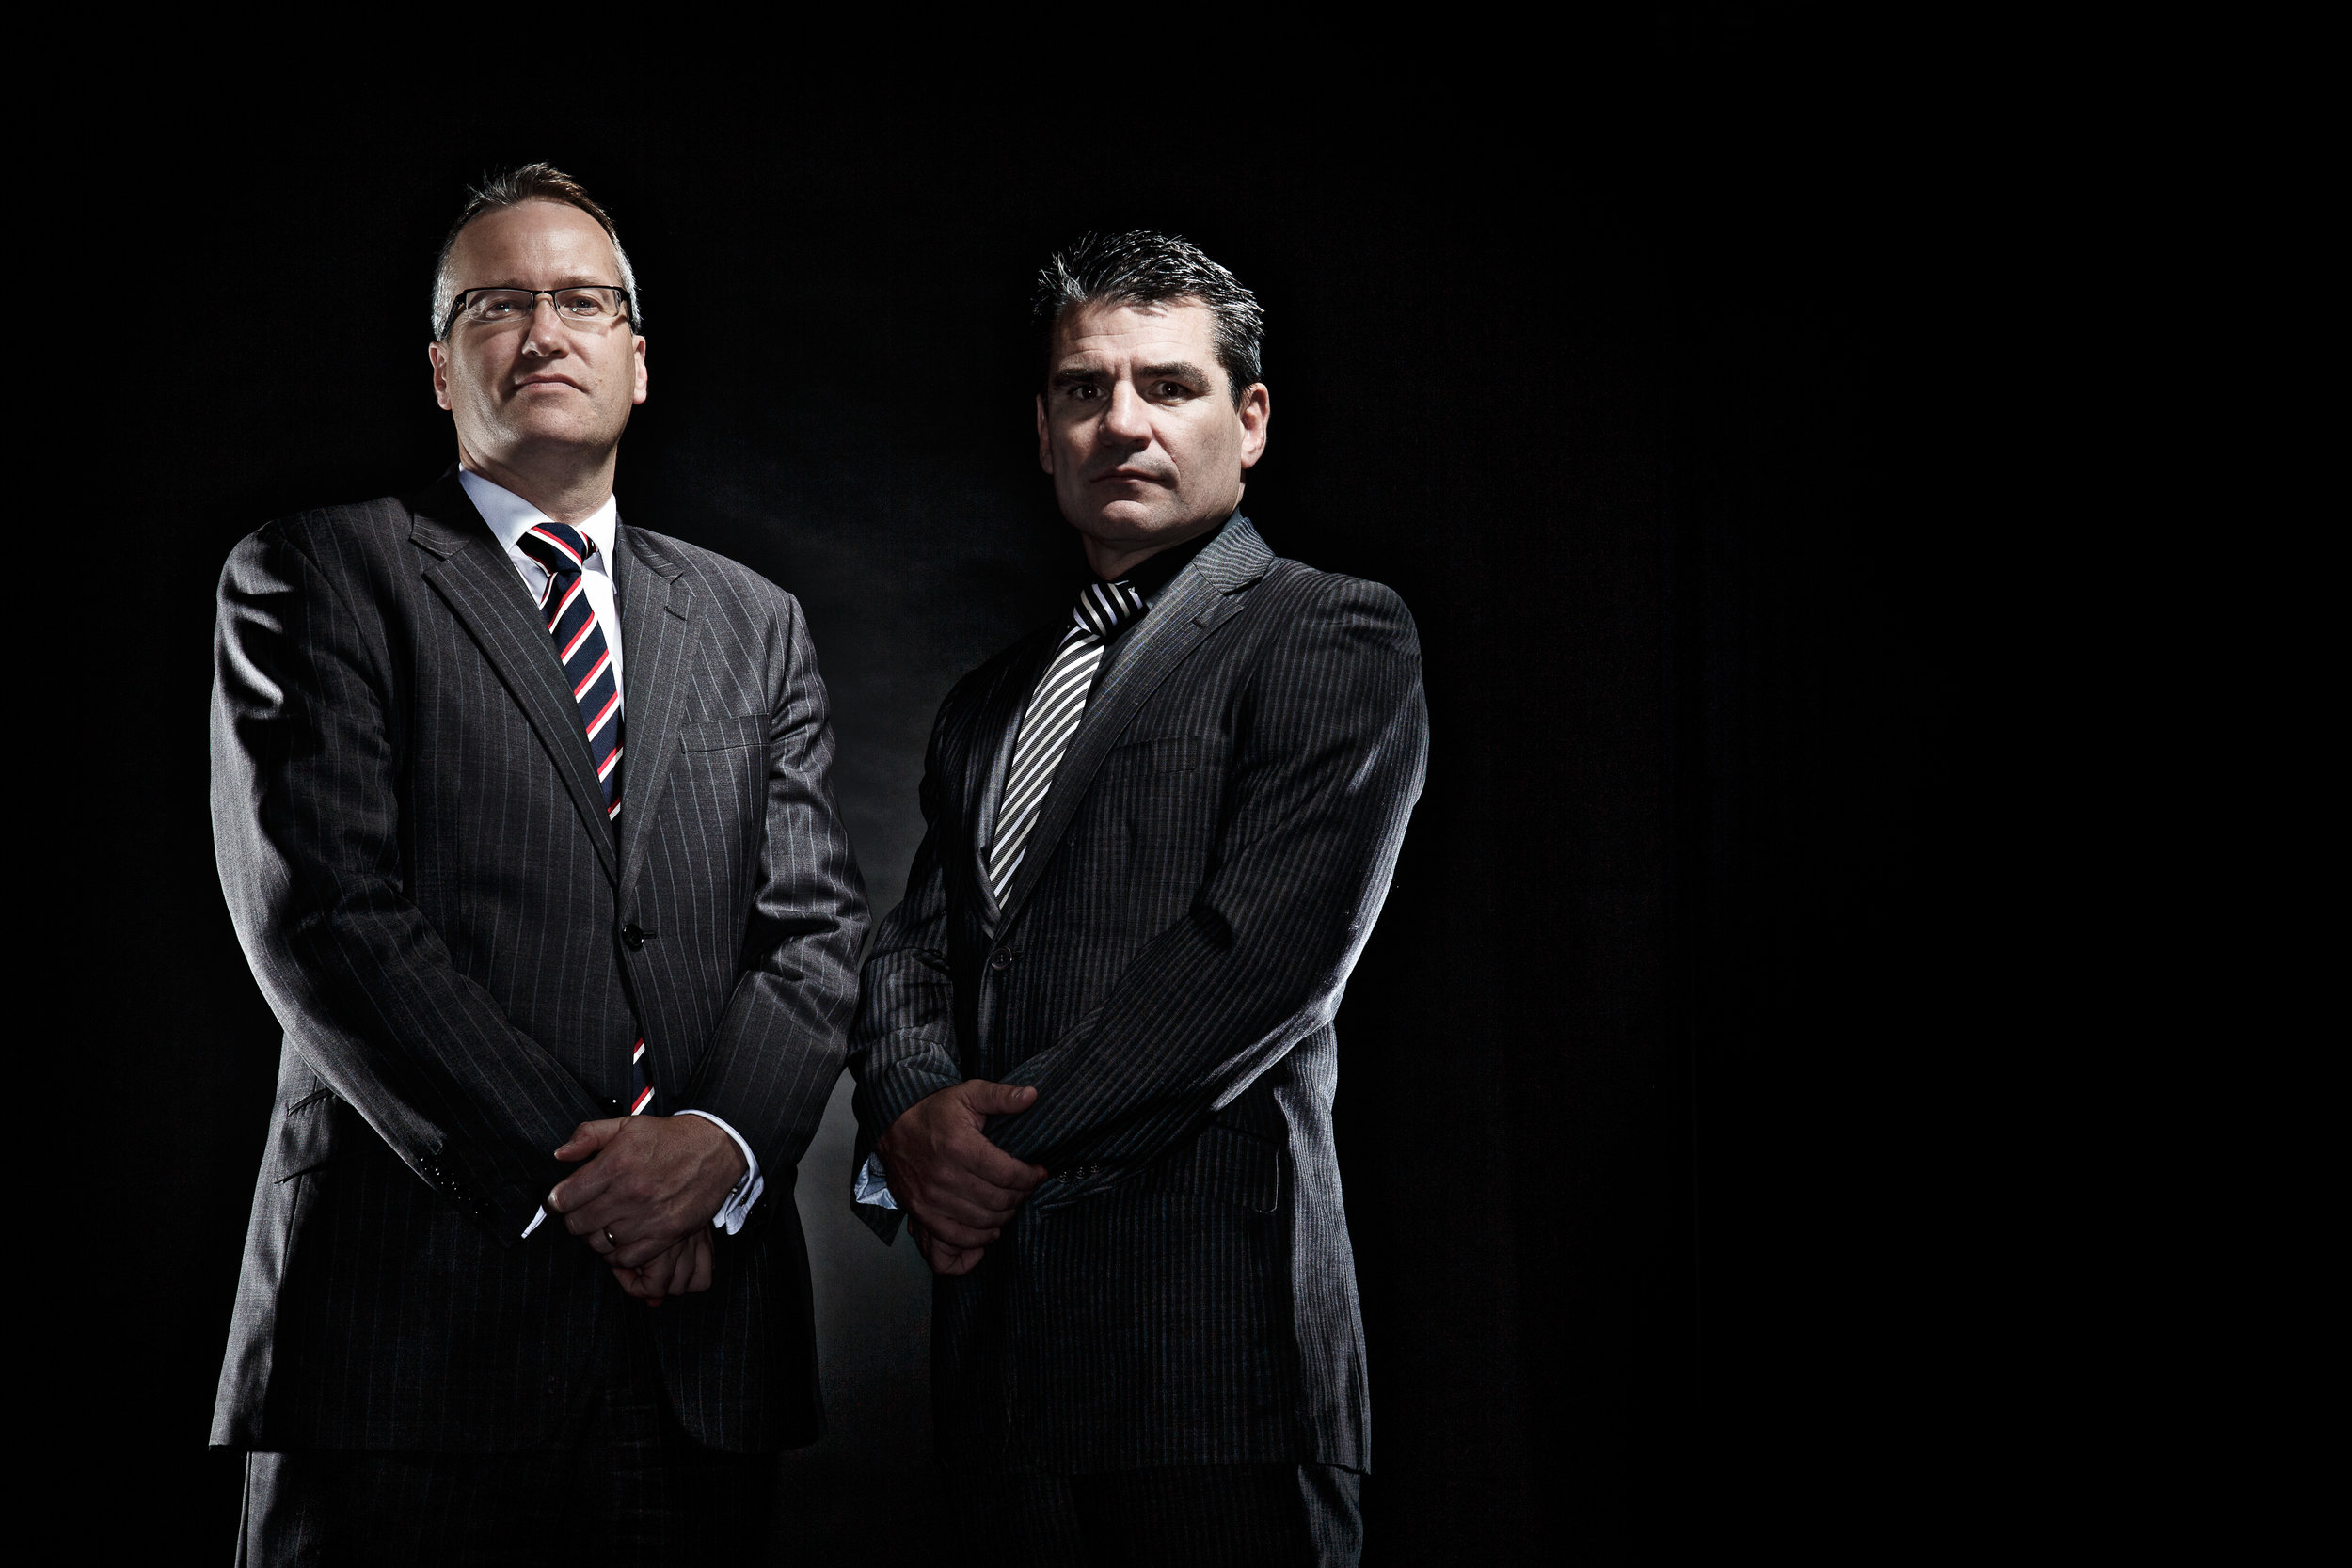 Editorial portrait photograph of two police detectives looking strong and dominant